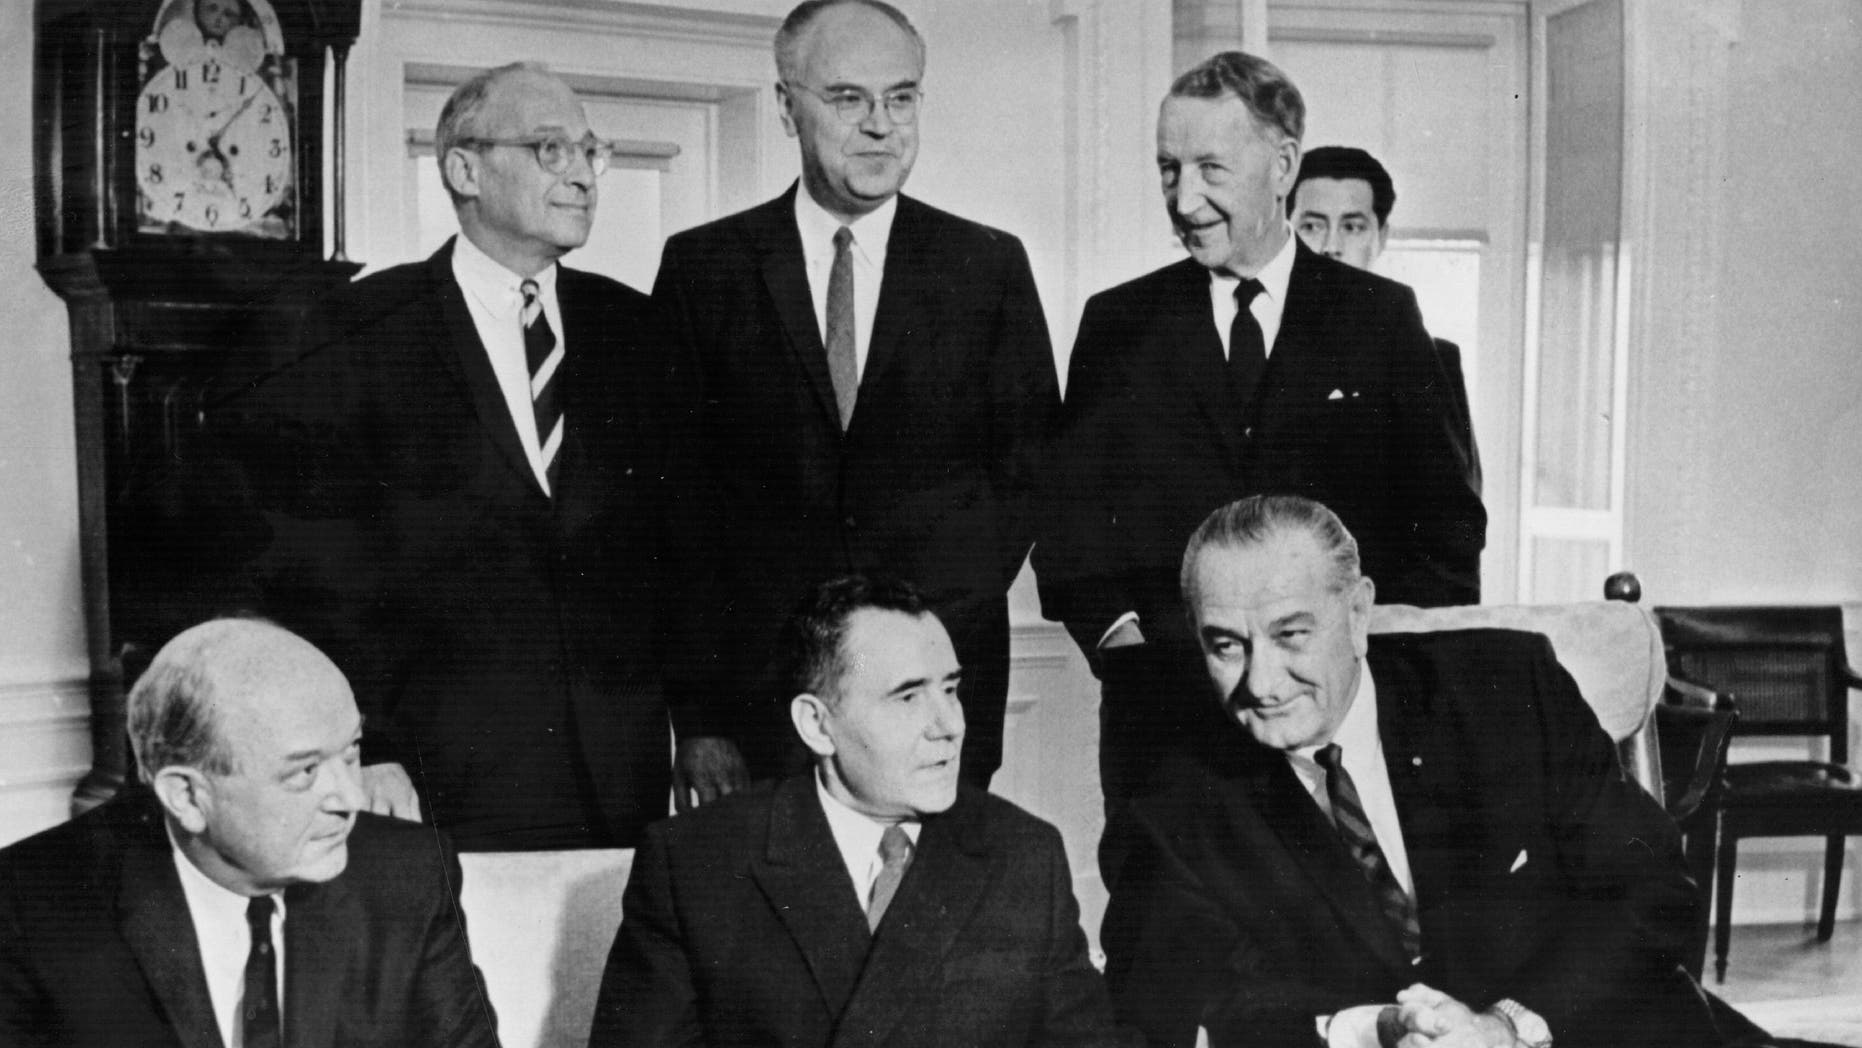 Lyndon Baines Johnson (1908 - 1973) 36th President of America seen here in the White House, with Secretary of State Dean Rusk (1909 - 1994), Russian Soviet foreign minister Andrei A. Gromyko (1909 - 1989), National Security Advisor Walt Rostow (1916 - 2003), Soviet ambassador Anatoly Dobrynin, and Llewellyn E. Thompson (1904 - 1972), October 13, 1966.  (Photo by Central Press/Getty Images)